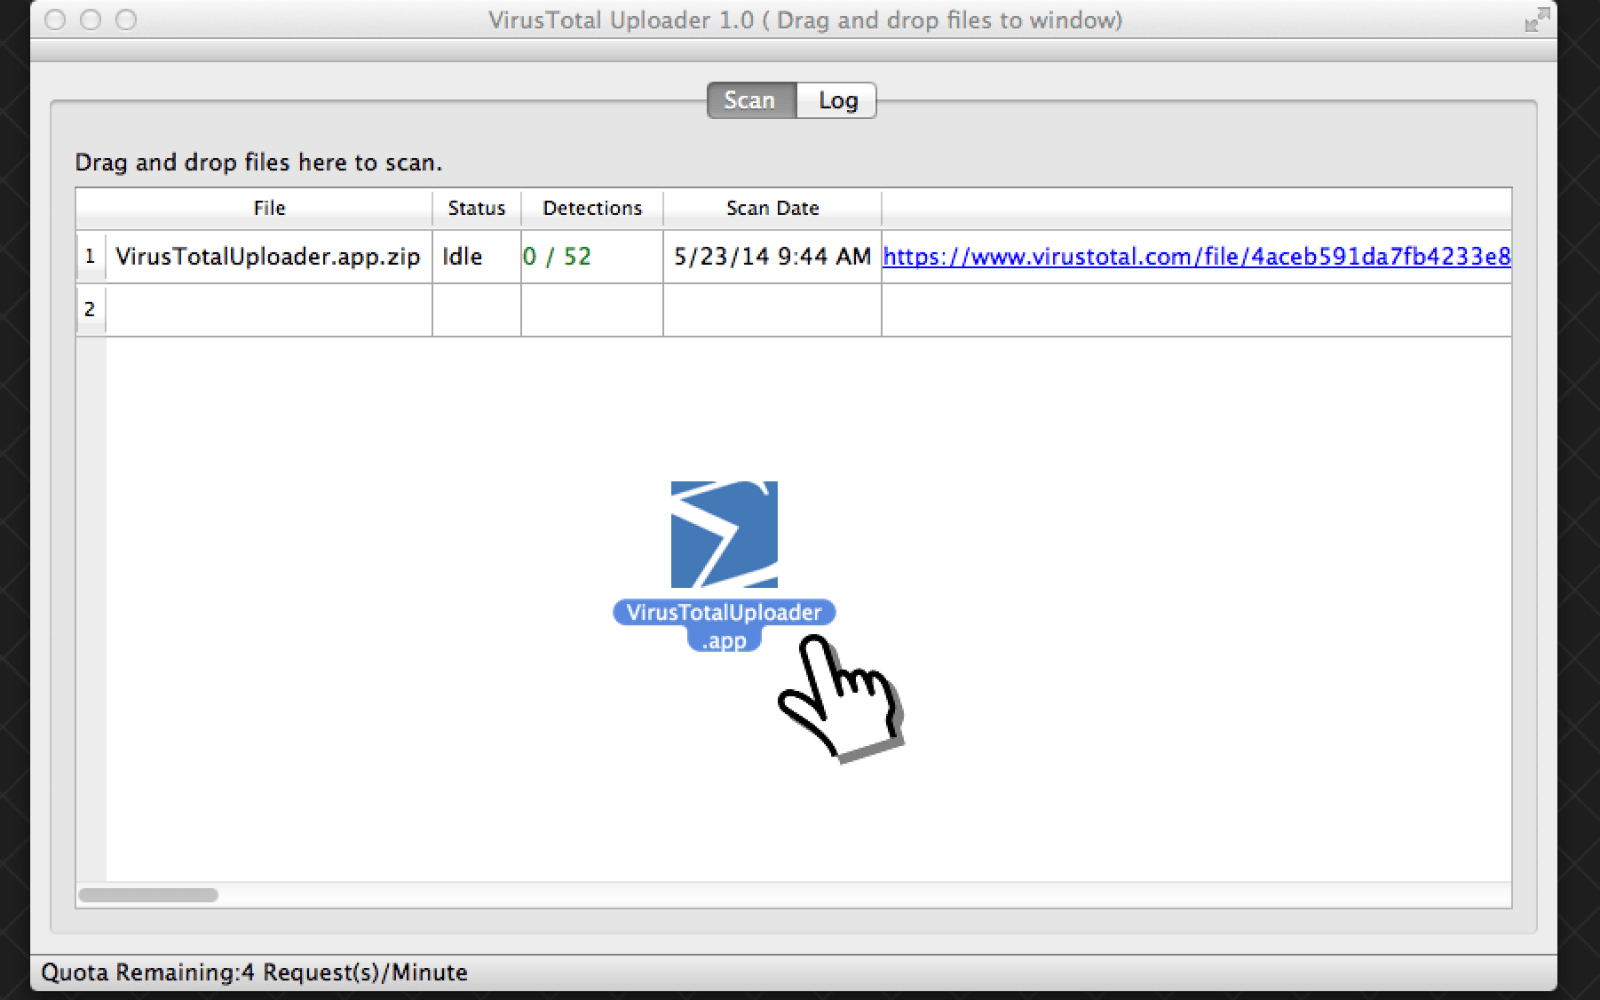 Google-owned VirusTotal releases Mac-compatible version of malware detection app